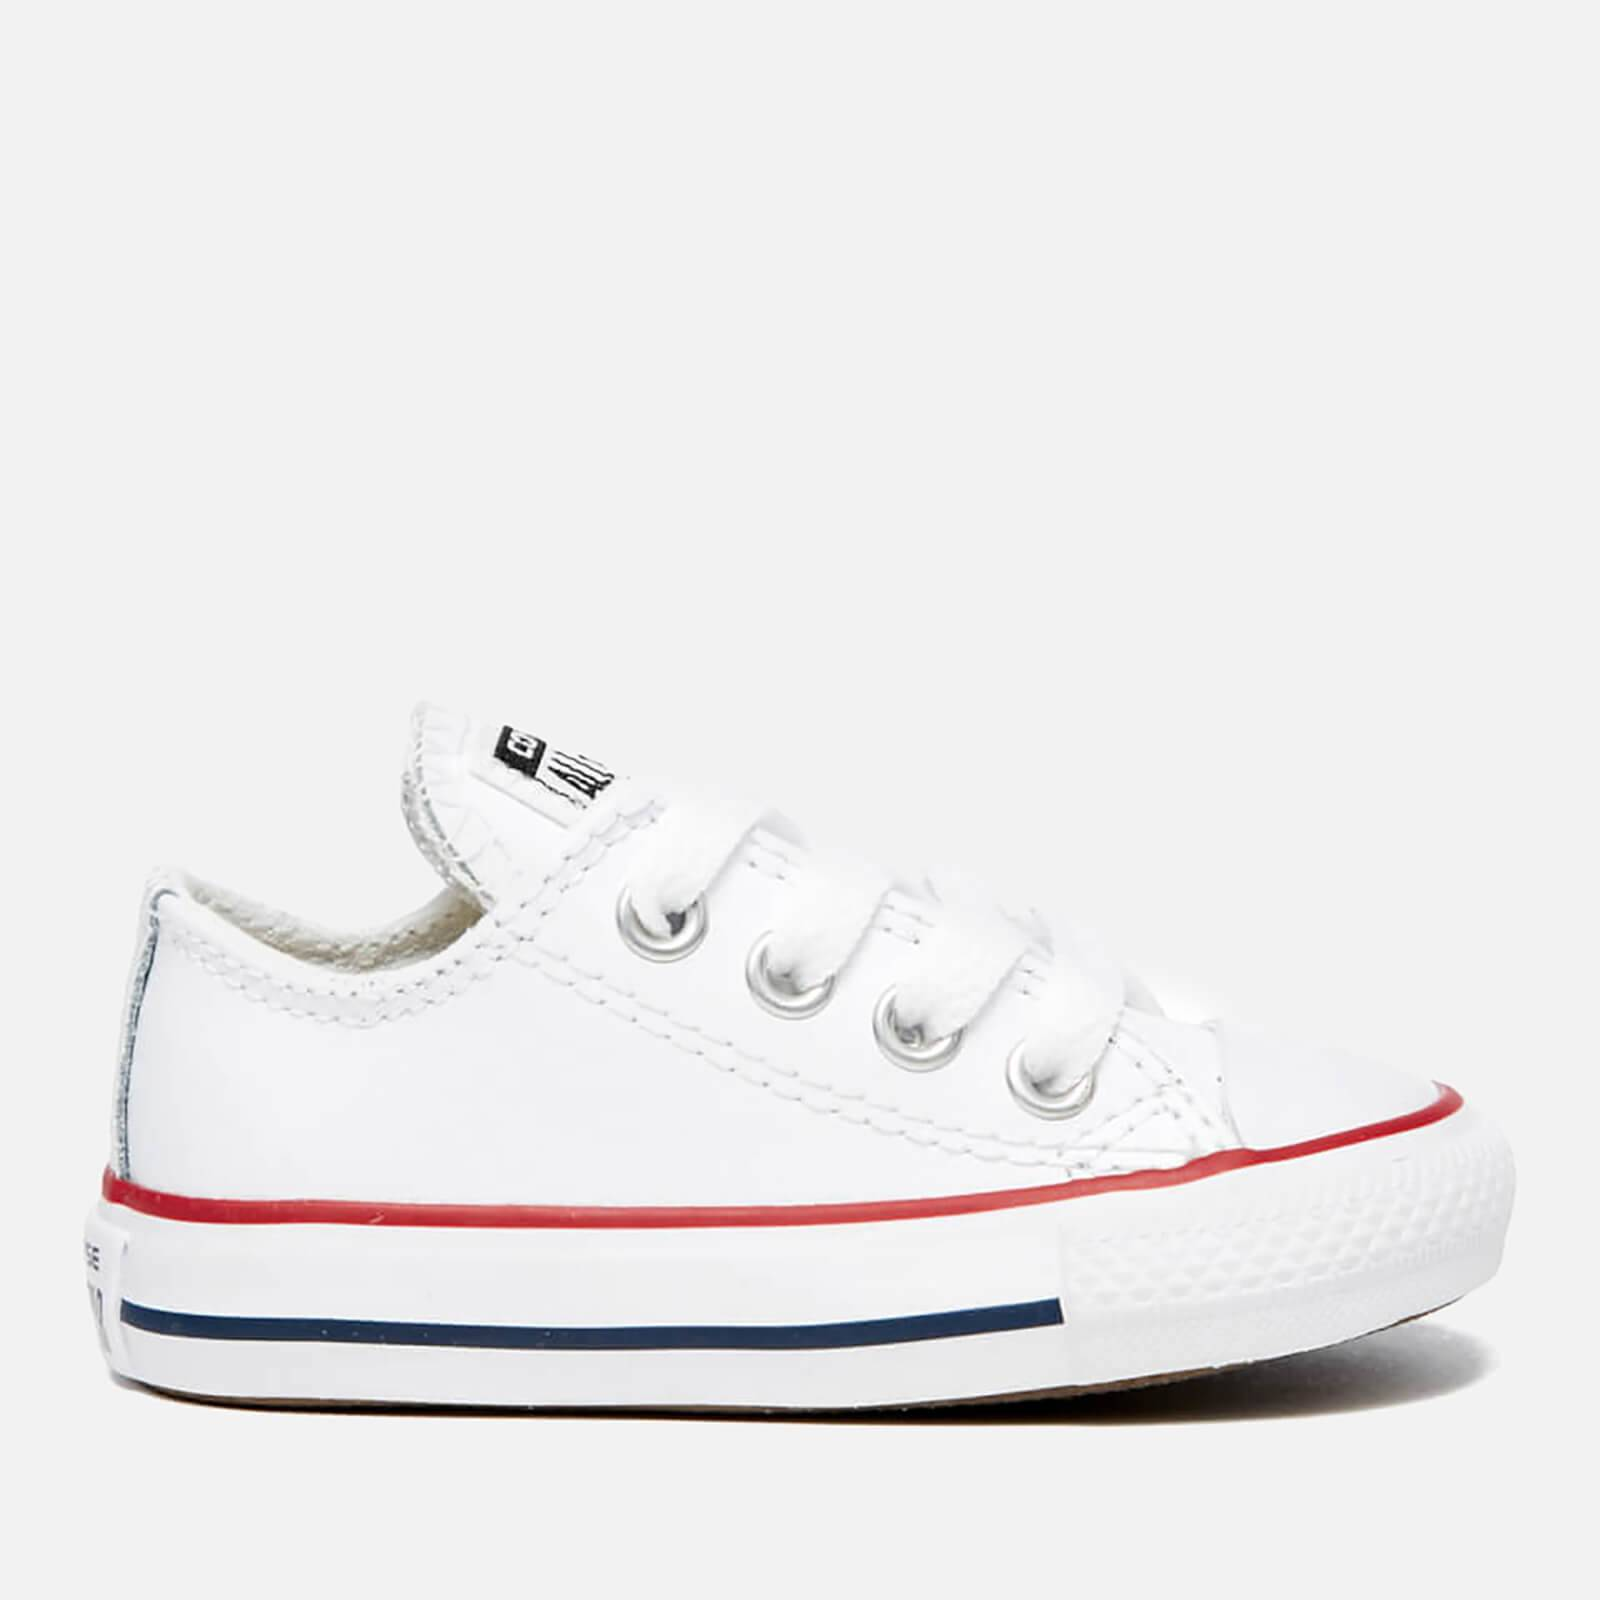 Converse Toddlers' Chuck Taylor All Star Ox Trainers - White/Garnet/Navy - UK 2 Toddler